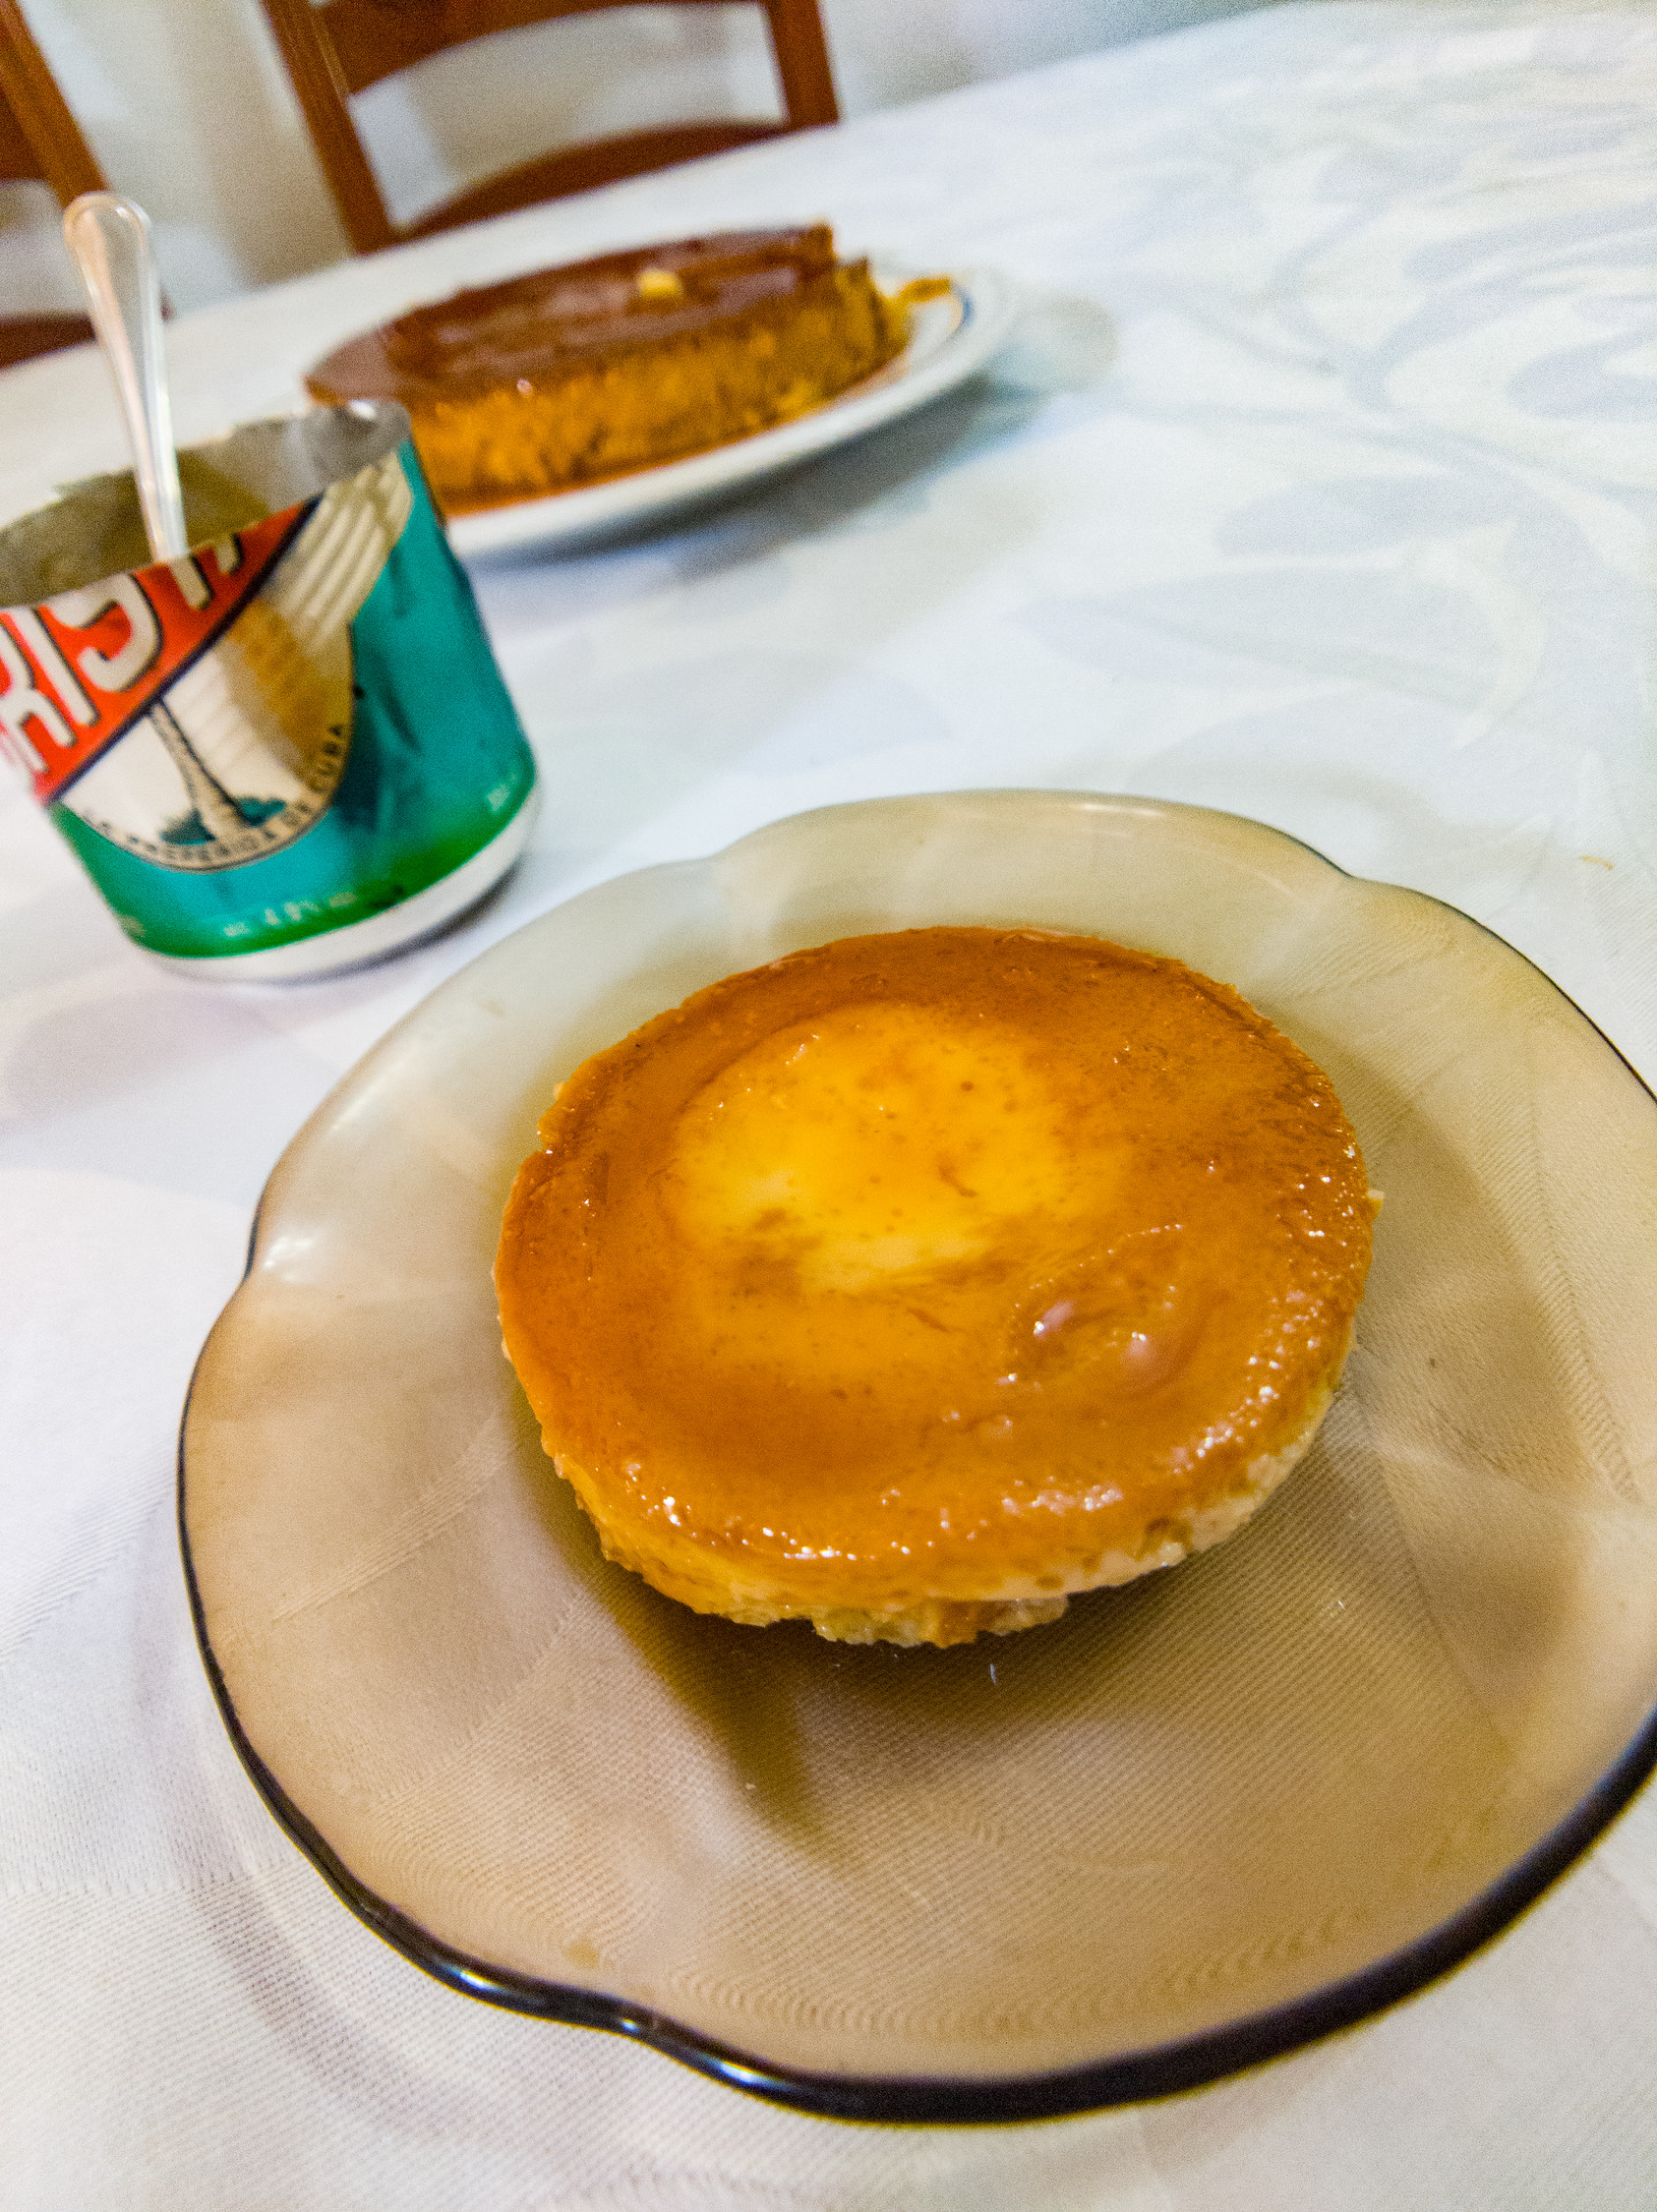 Cuban flan is often cooked in a beer can or soda can. On the table with the can in the background.